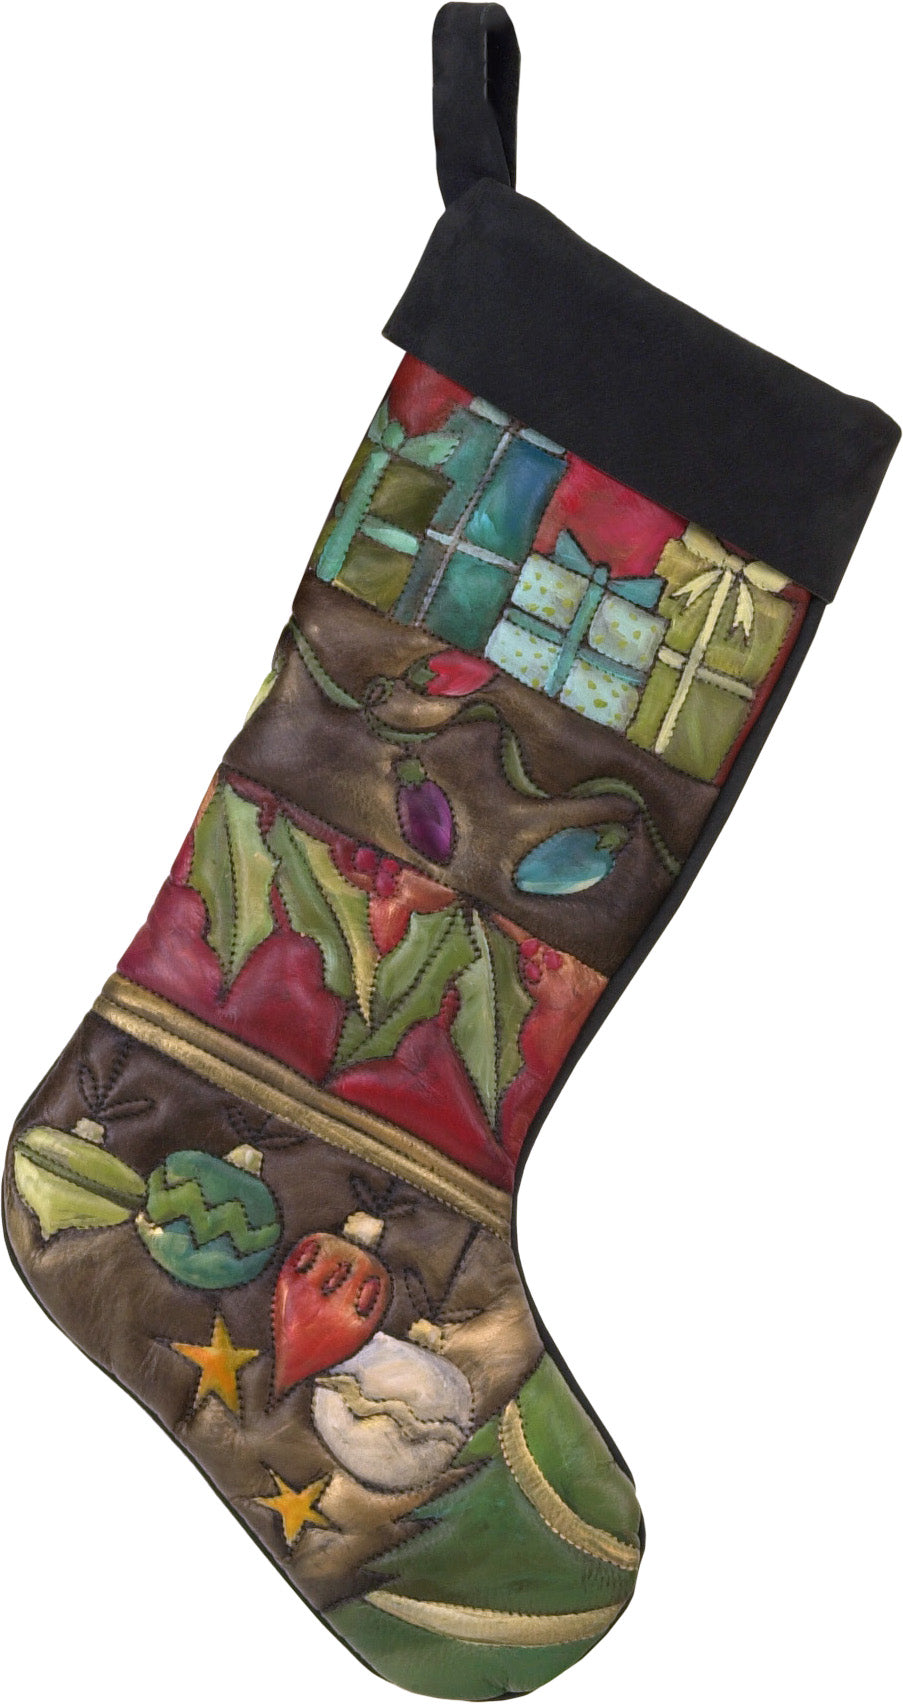 Leather Stocking –  Gorgeous classic Christmas stocking in a crazy quilt motif